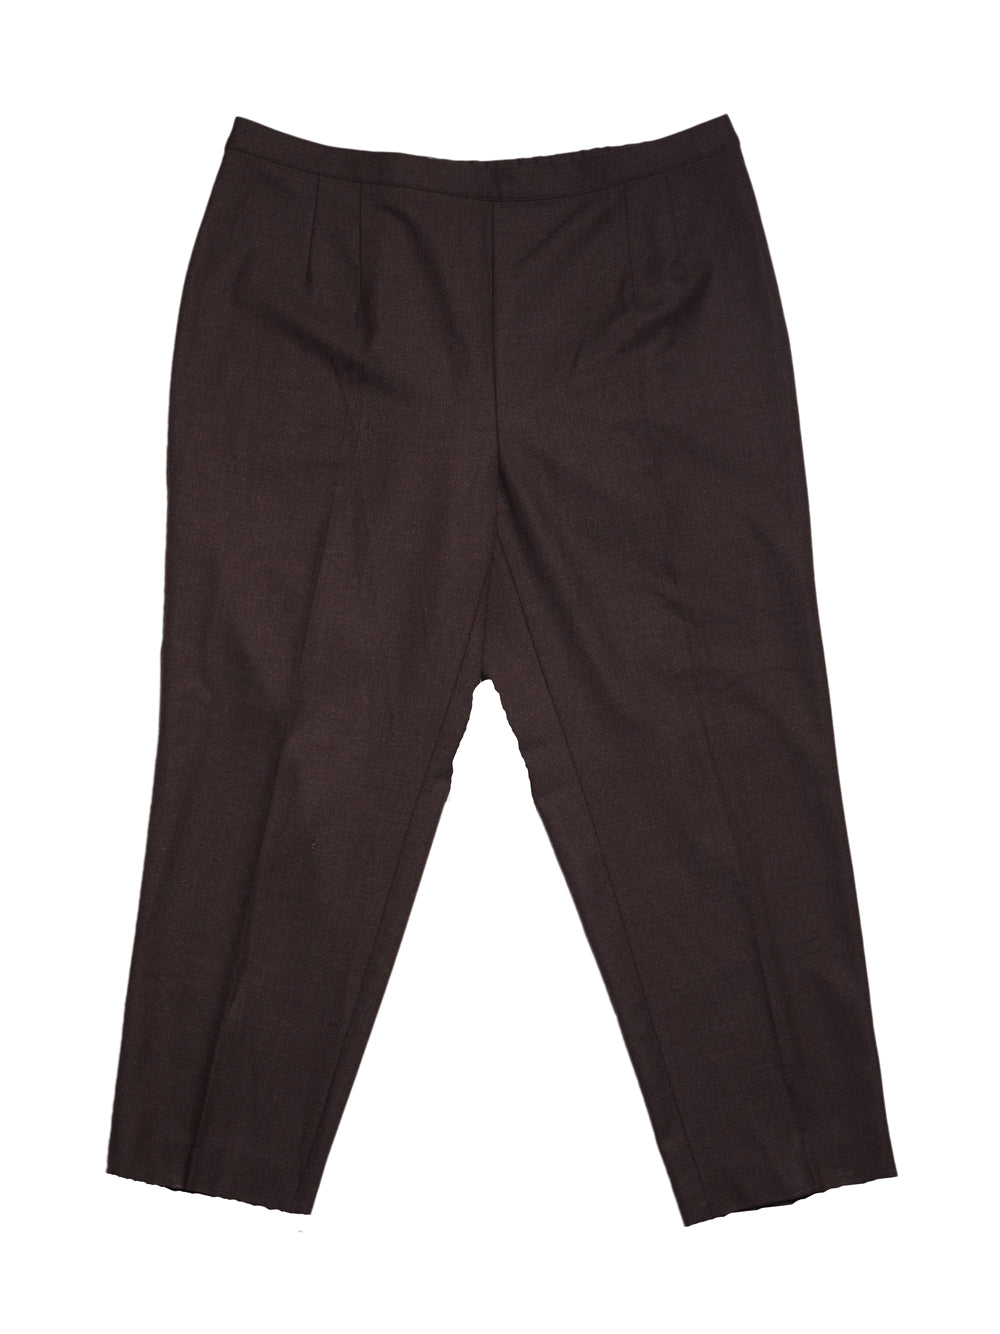 Front photo of Preloved Elena Mirò Brown Man's trousers - size 38/M